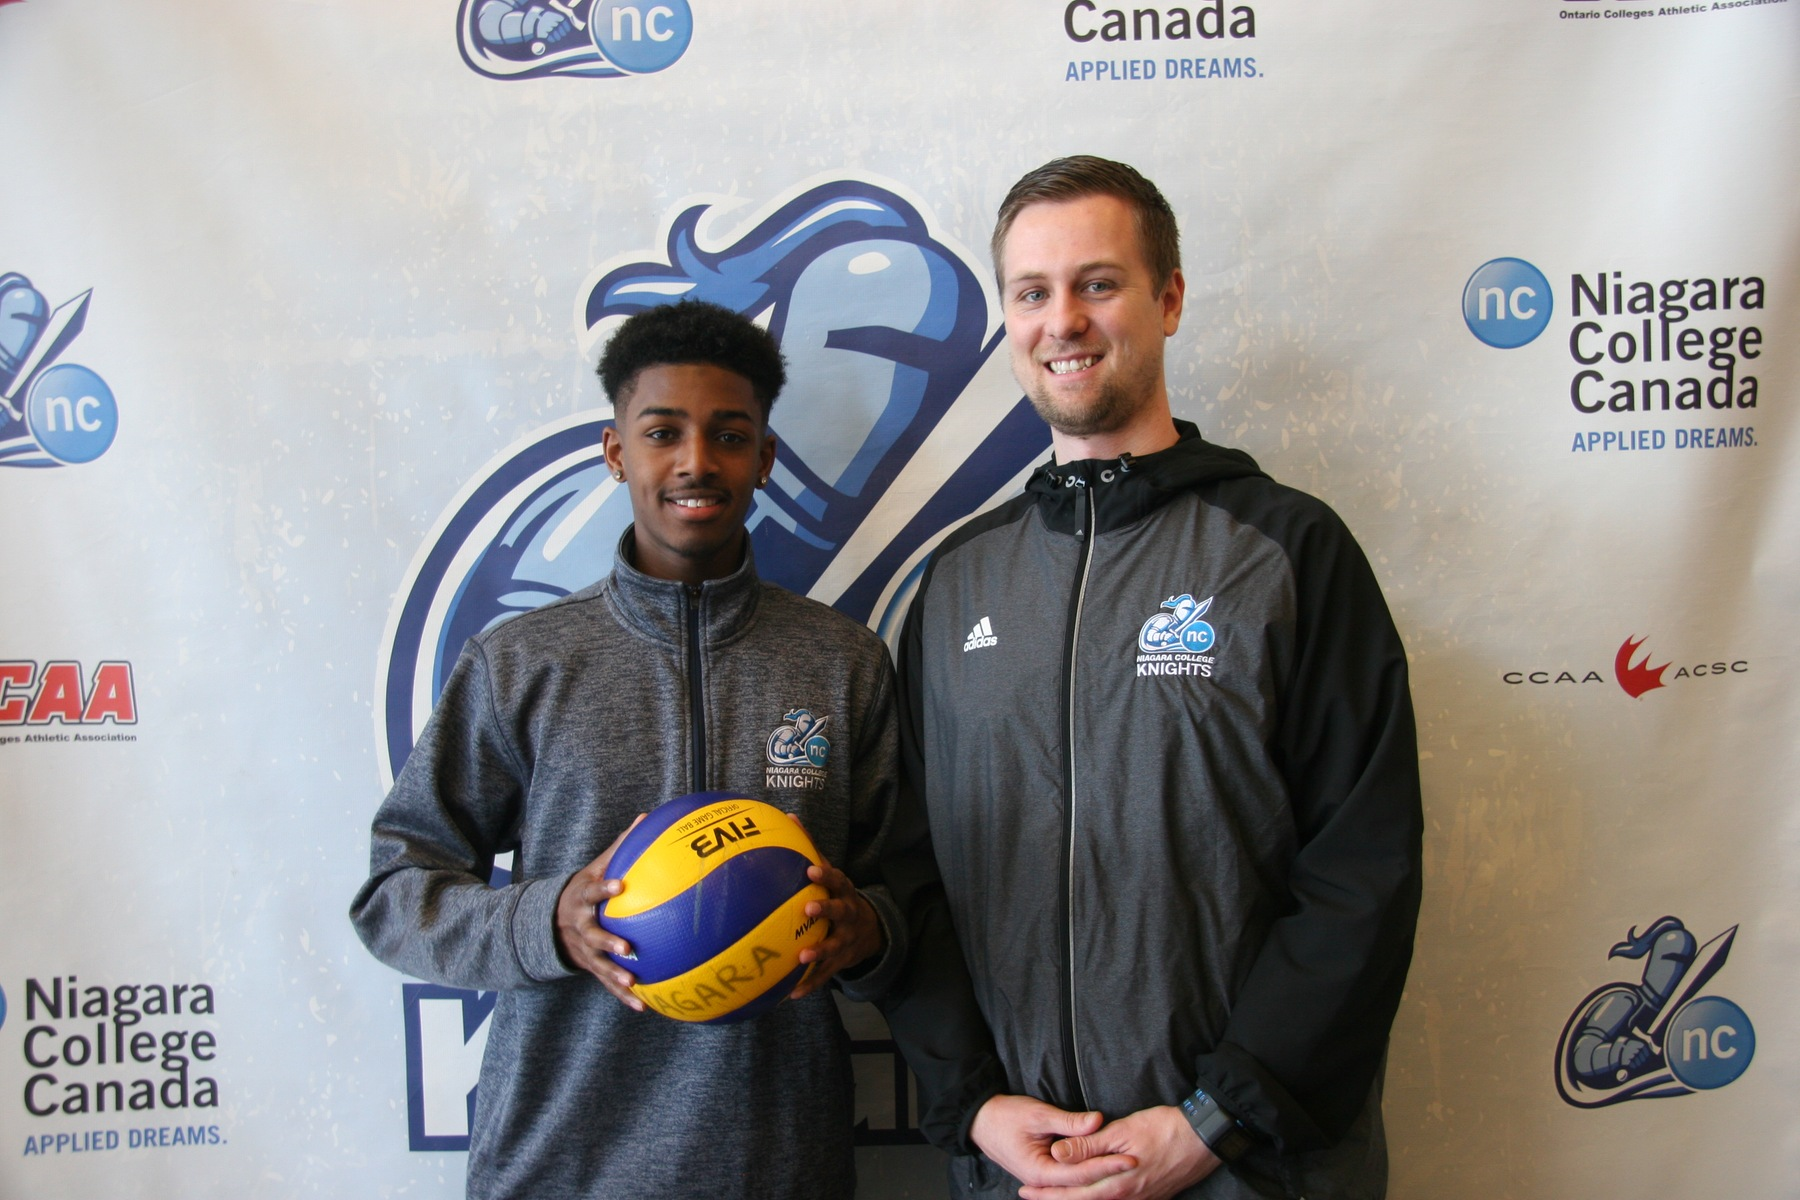 NEWS: Men's Volleyball announce addition of Toronto Onyx standout Jaydon Milne